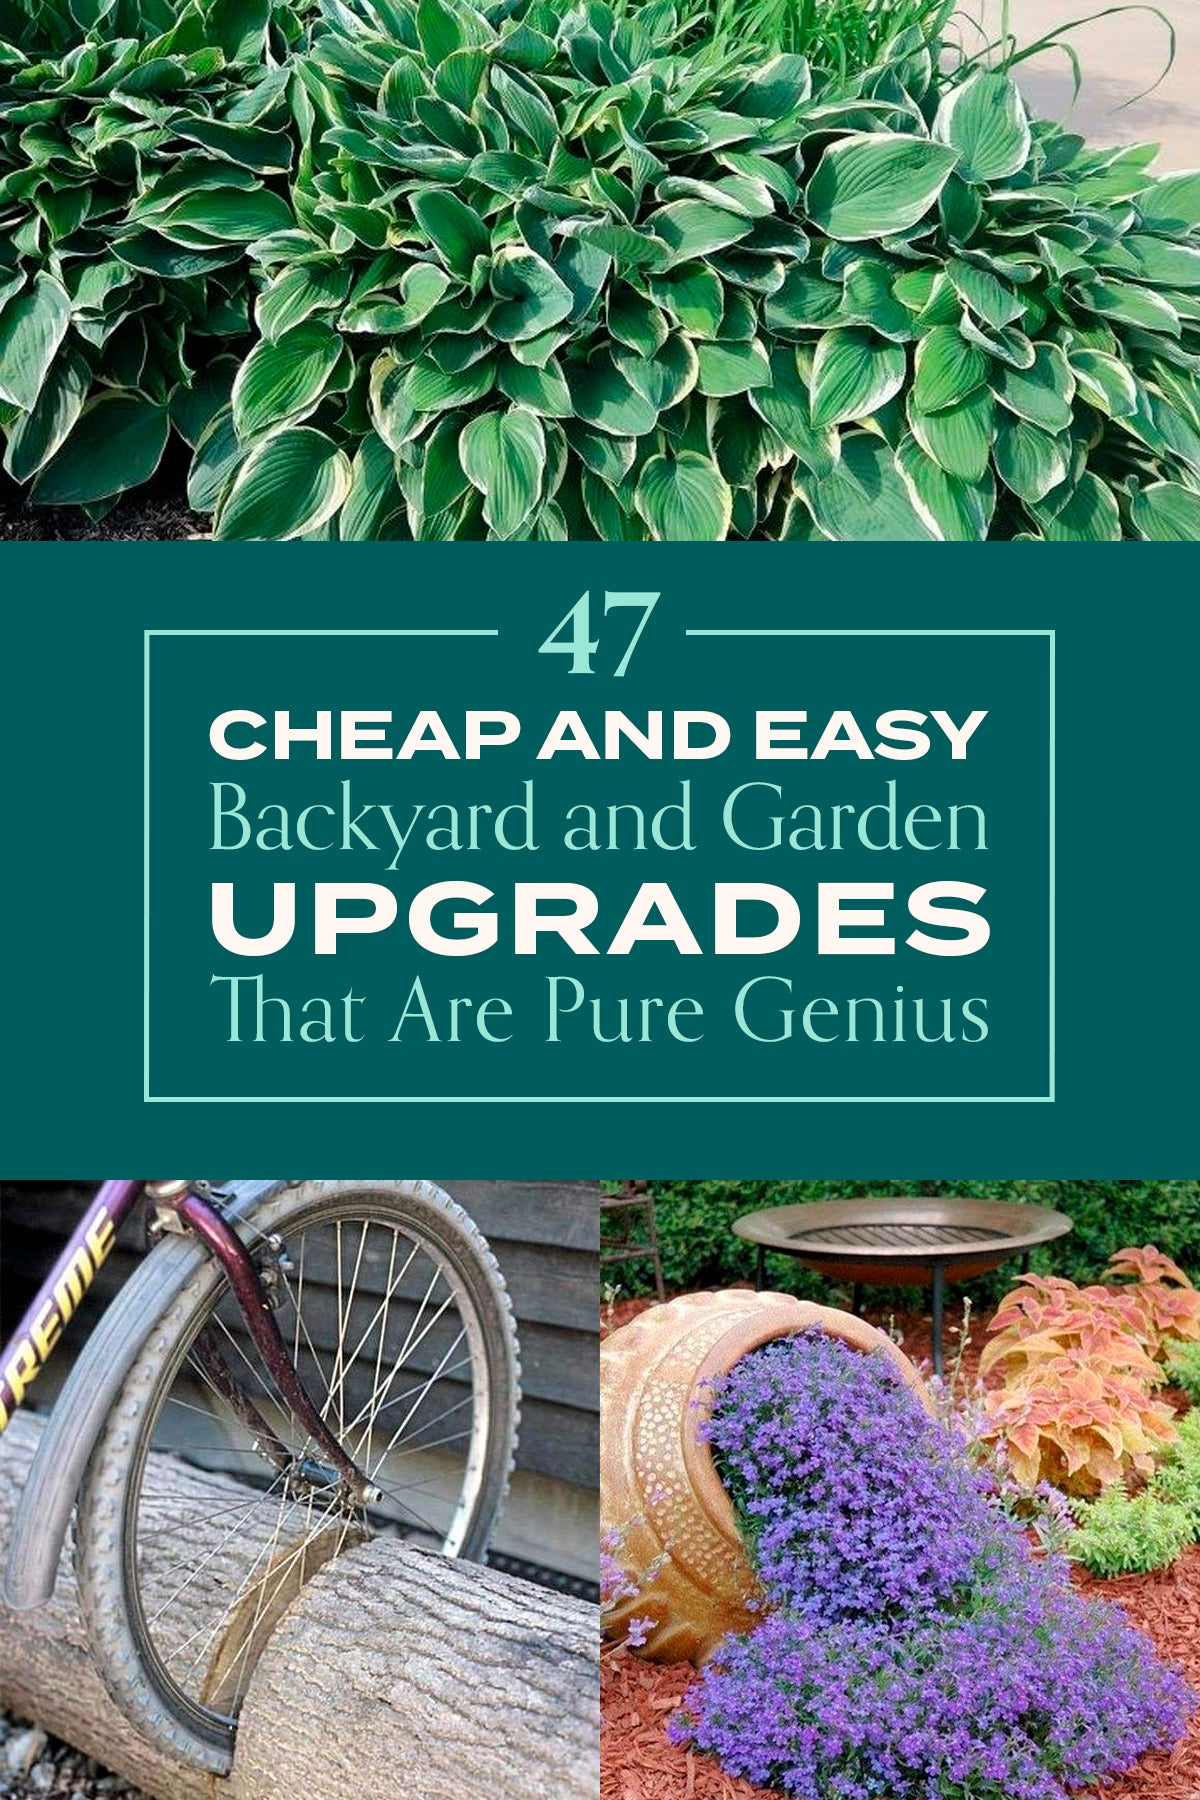 47 Cheap And Easy Backyard And Garden Upgrades That Are Pure